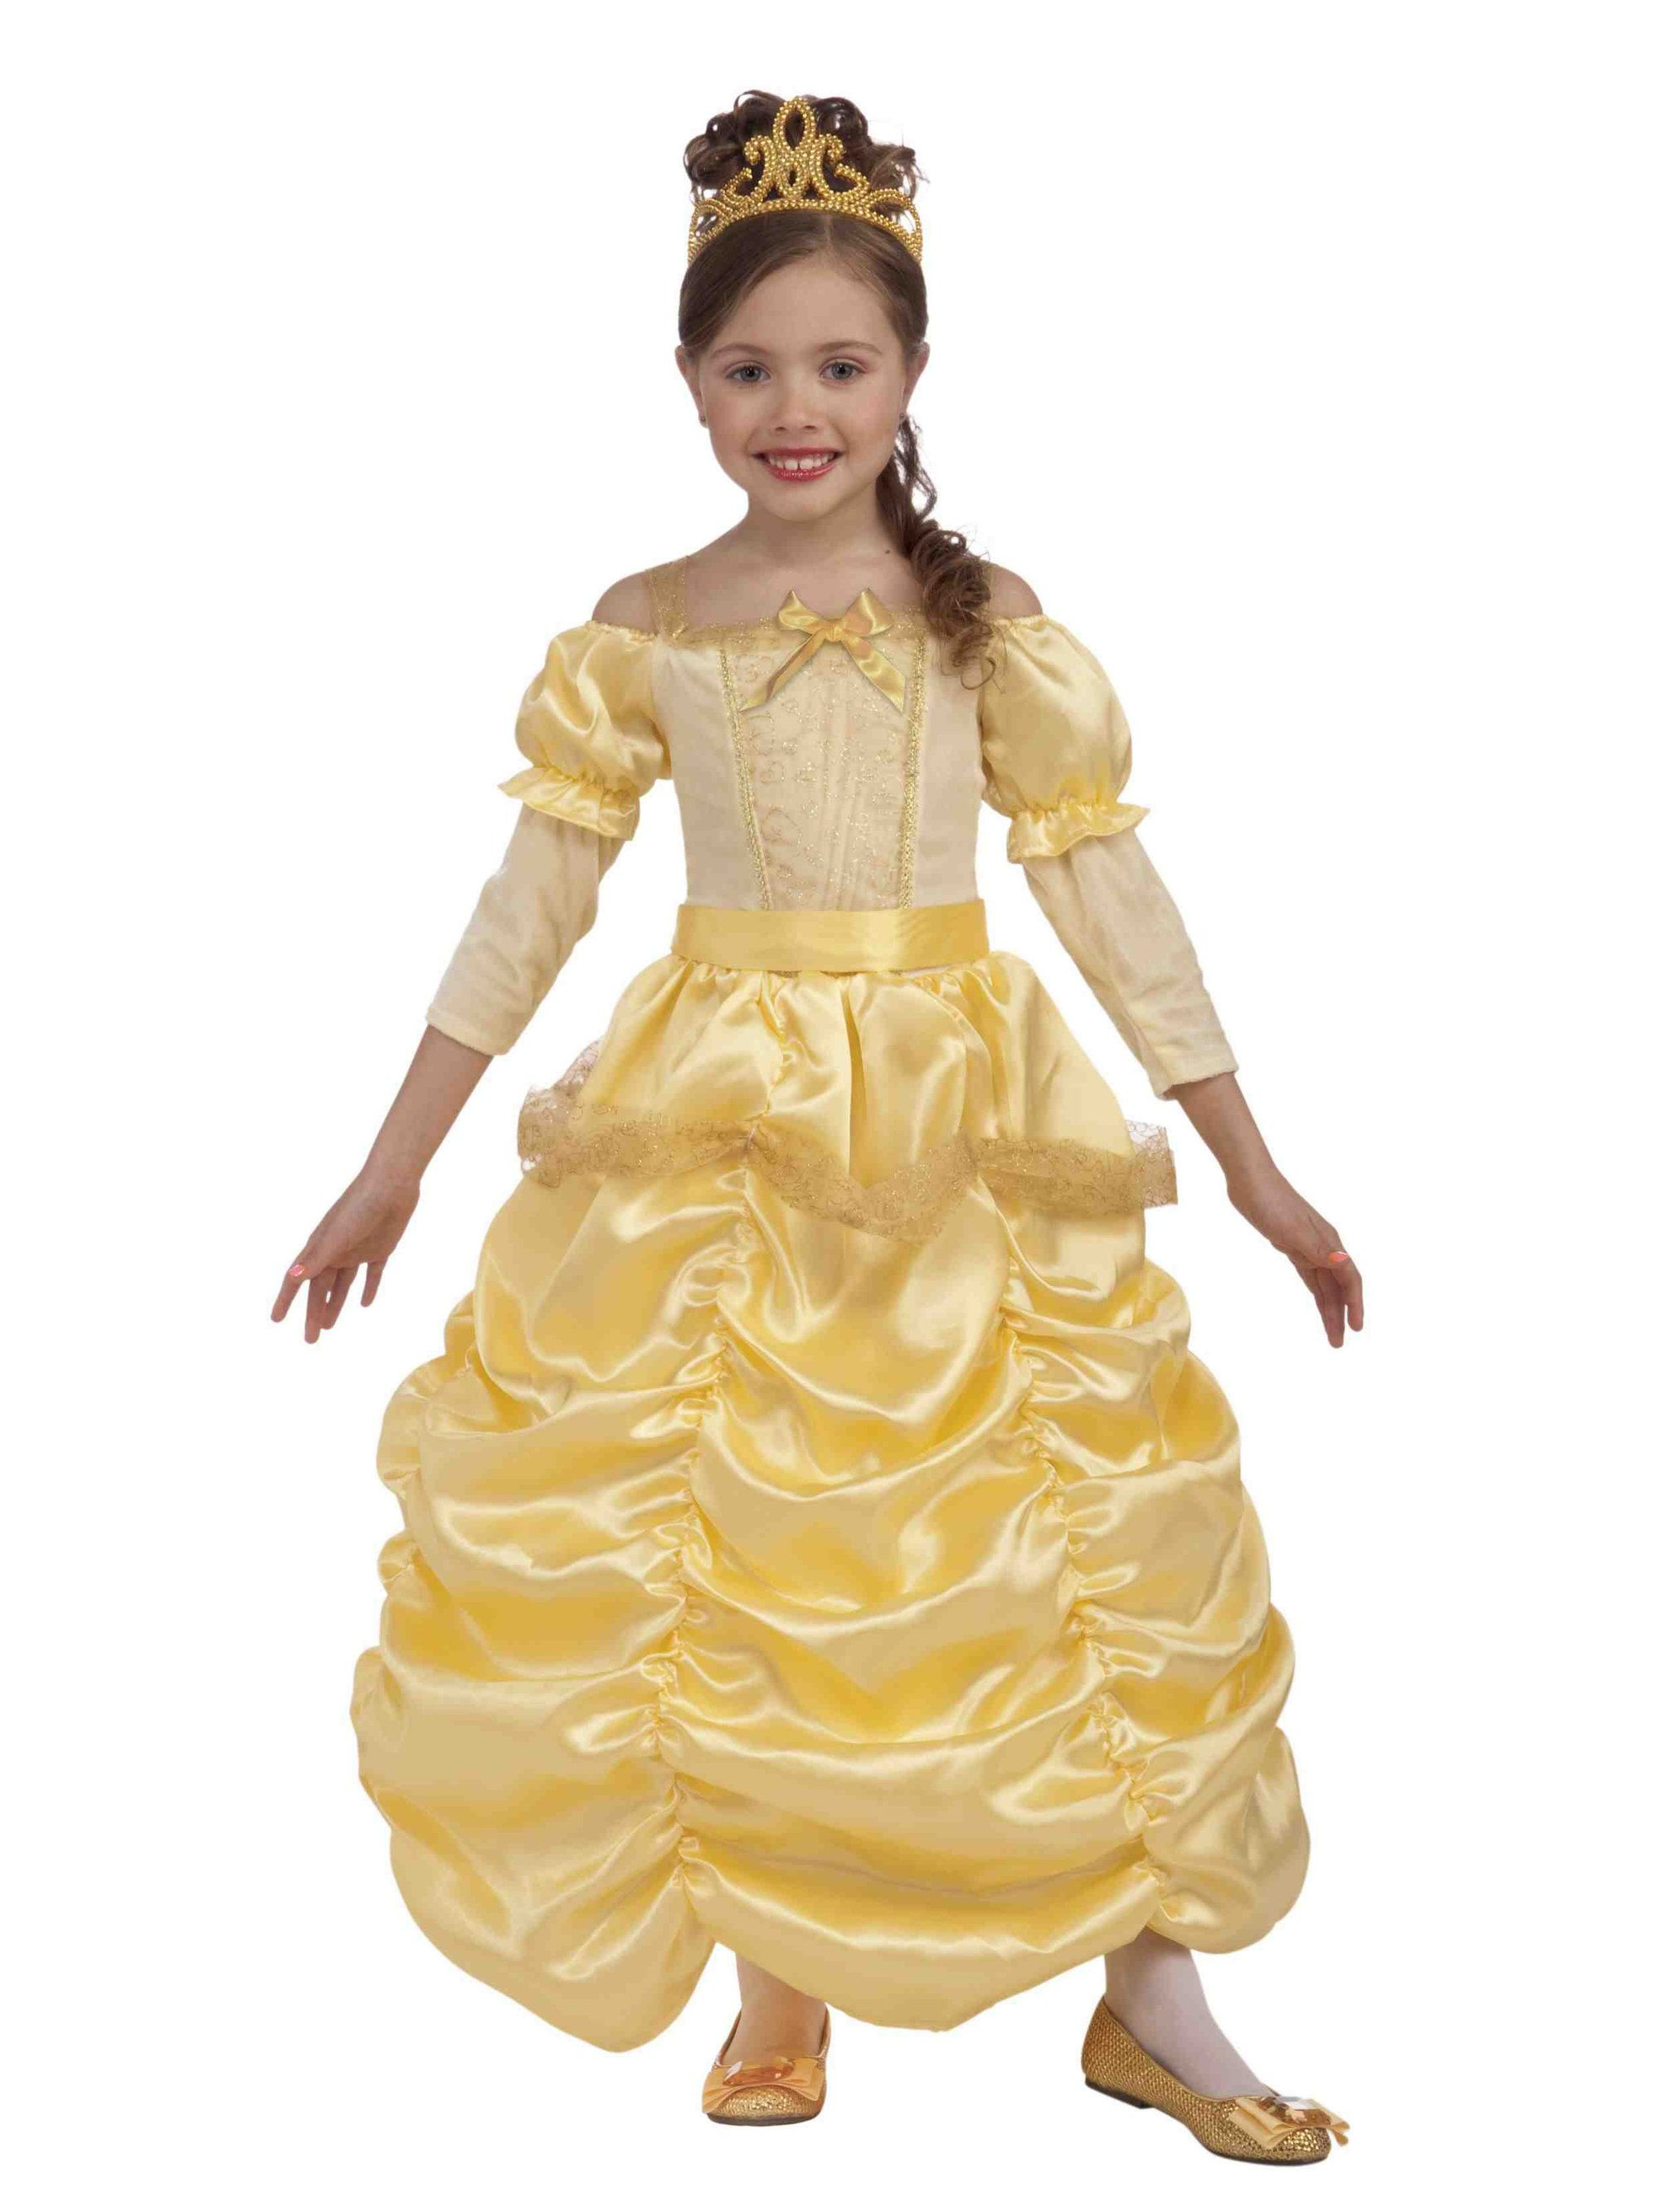 Gorgeous Princess Girls Costume  sc 1 st  Wholesale Halloween Costumes & Gorgeous Princess Girls Costume - Girls Costumes for 2018 ...